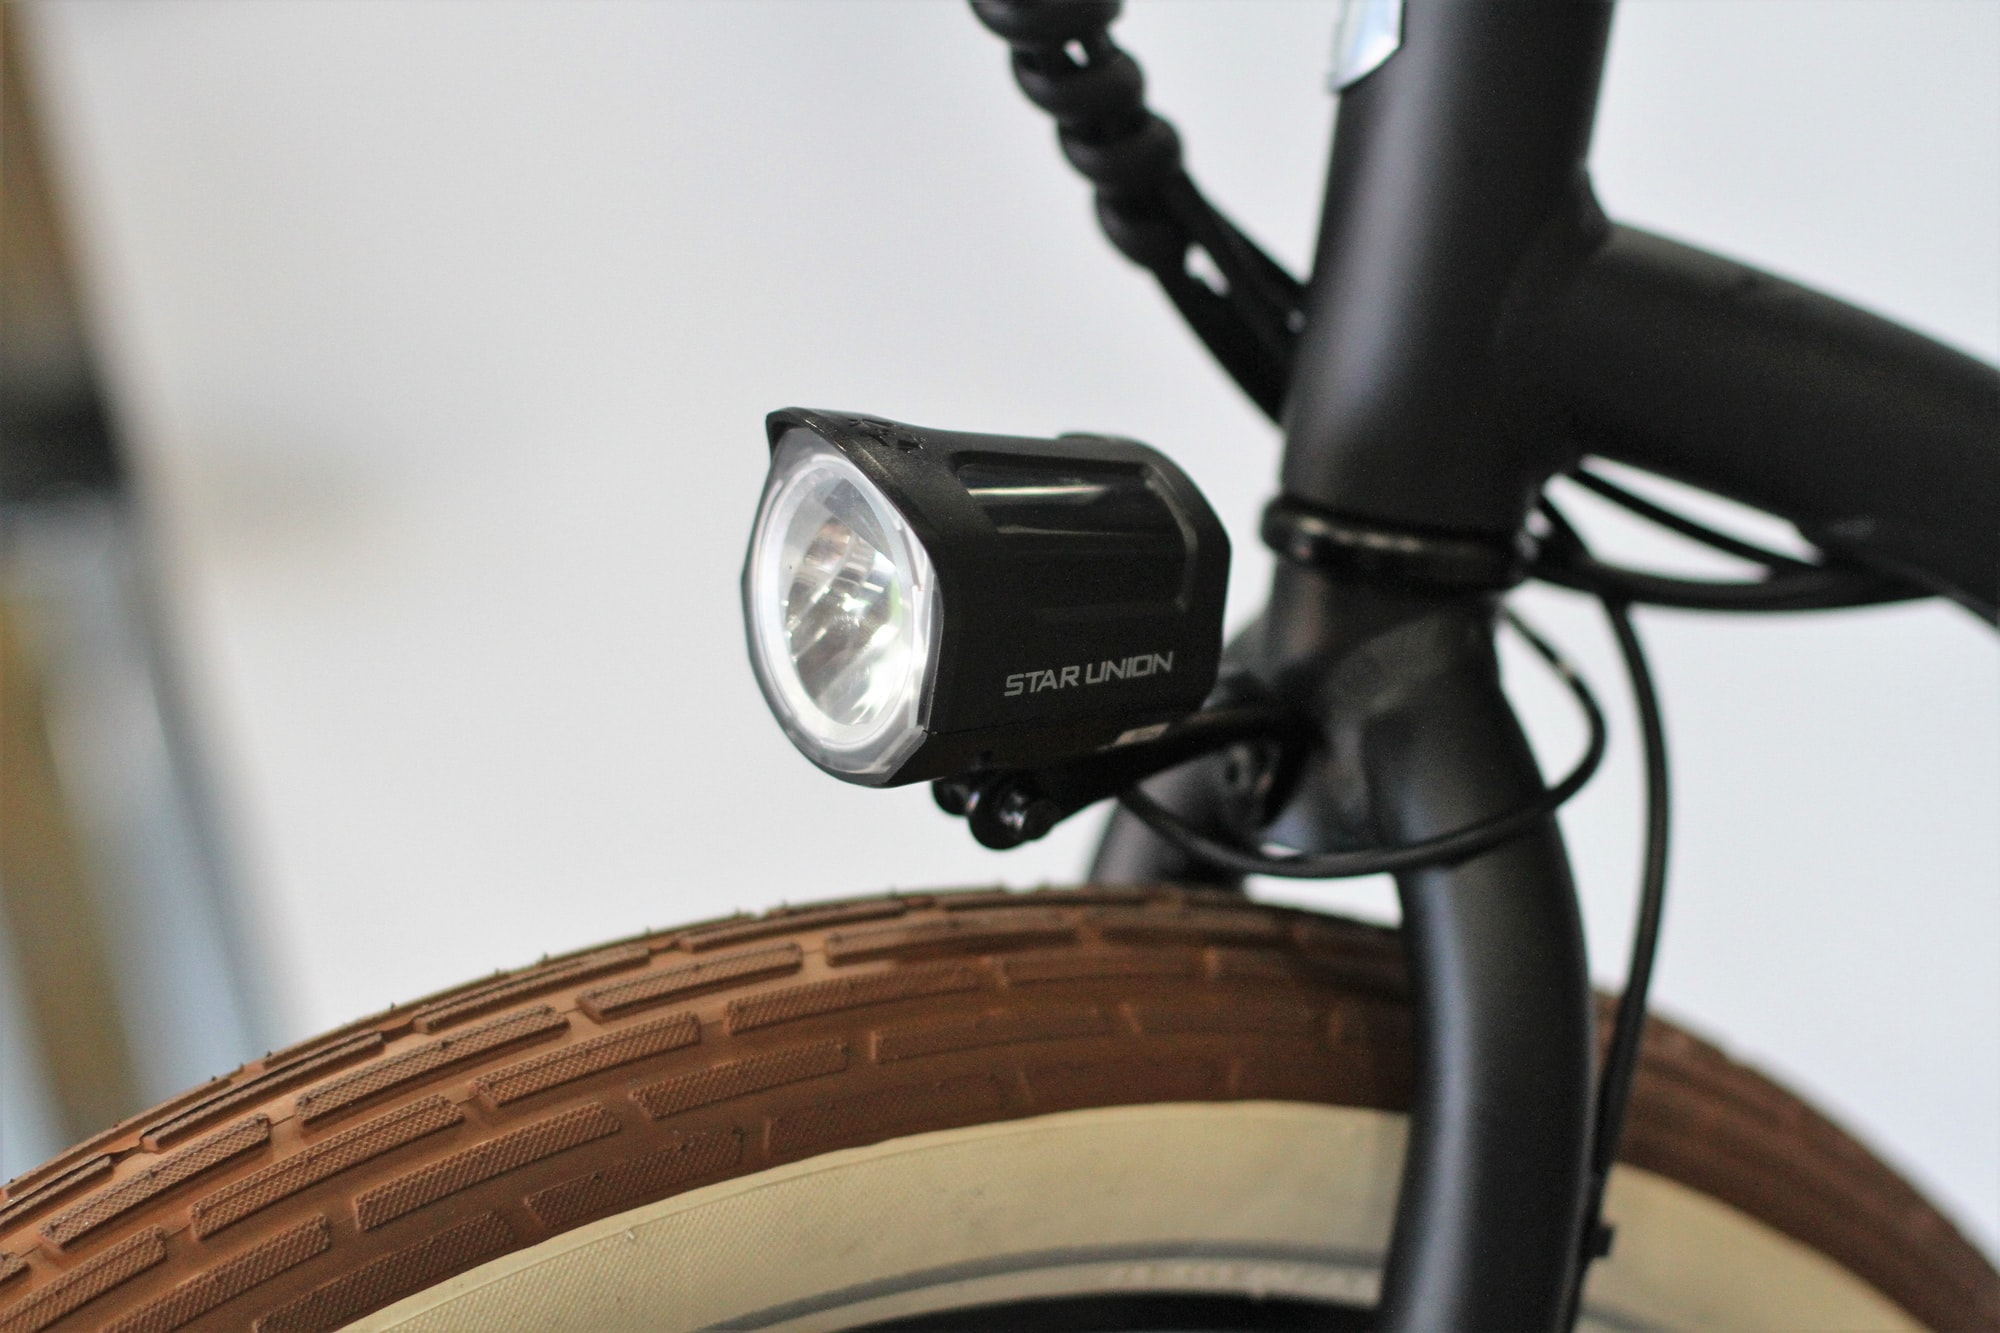 The Brightest Bike Lights for Dark Winter Rides